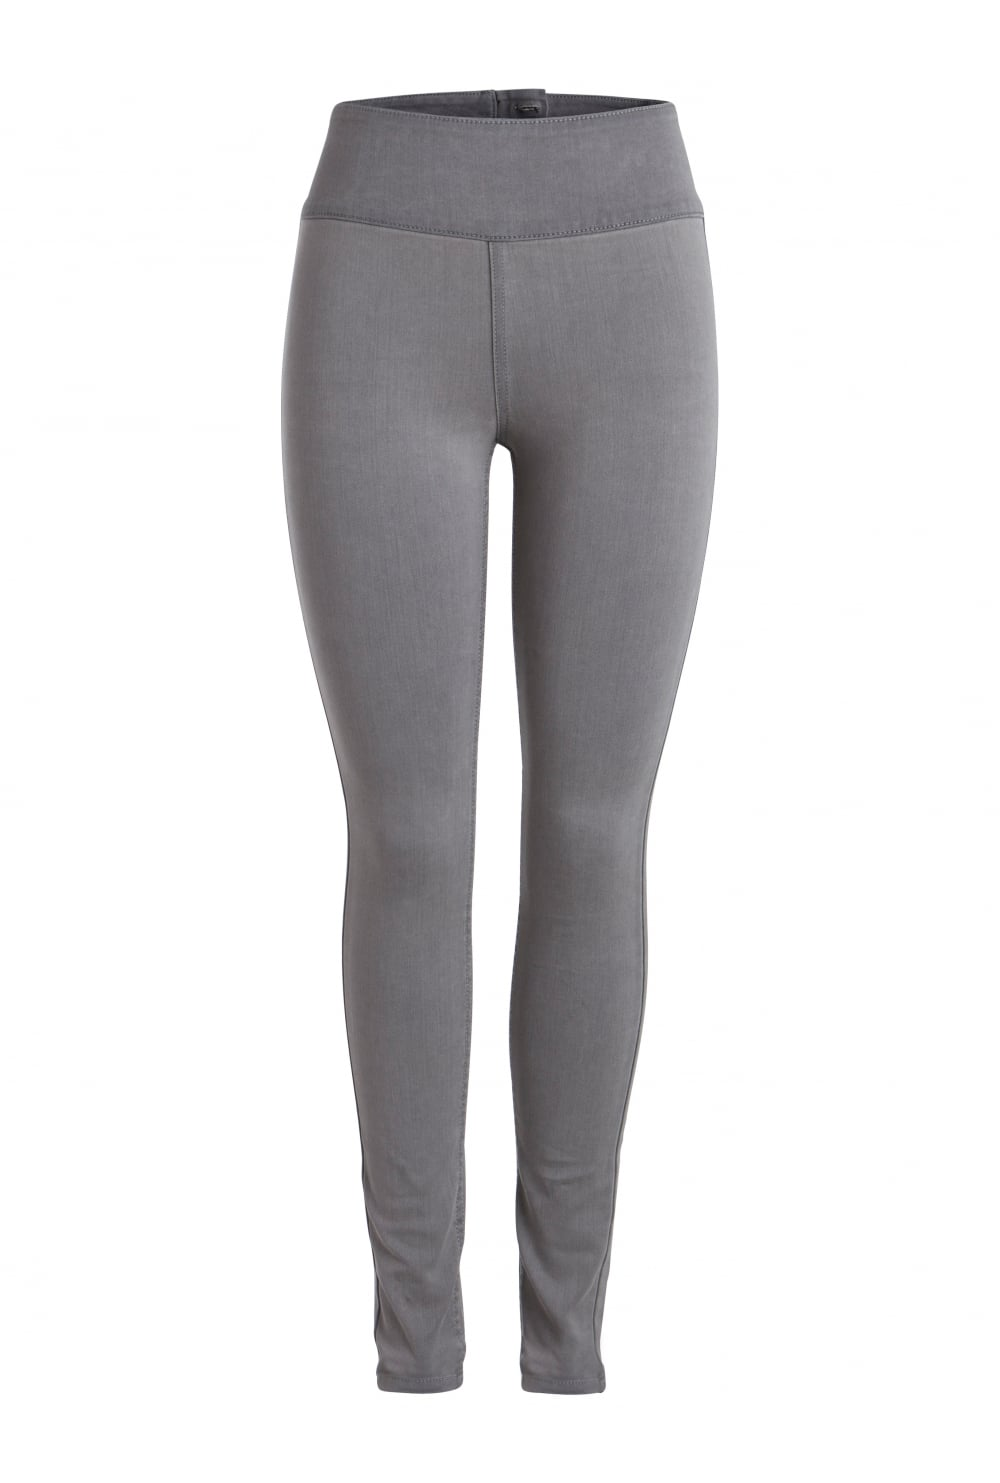 Pieces High Waist Stretch Grey Jeans - Pieces from Ruby Room UK